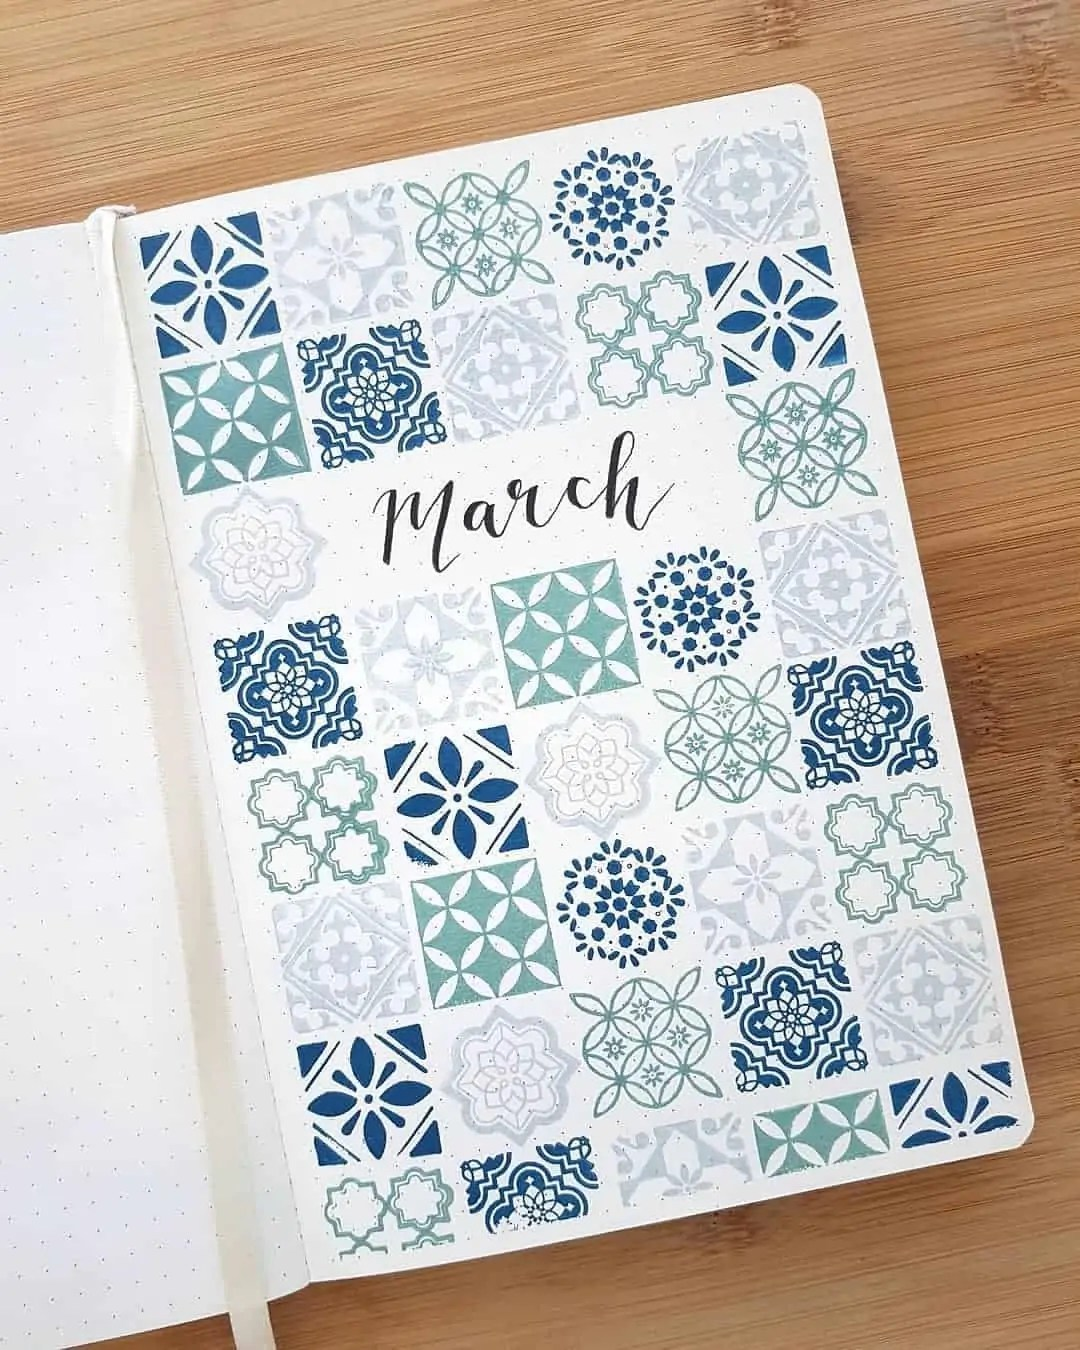 100+ Bullet Journal Ideas that you have to see and copy today! 70